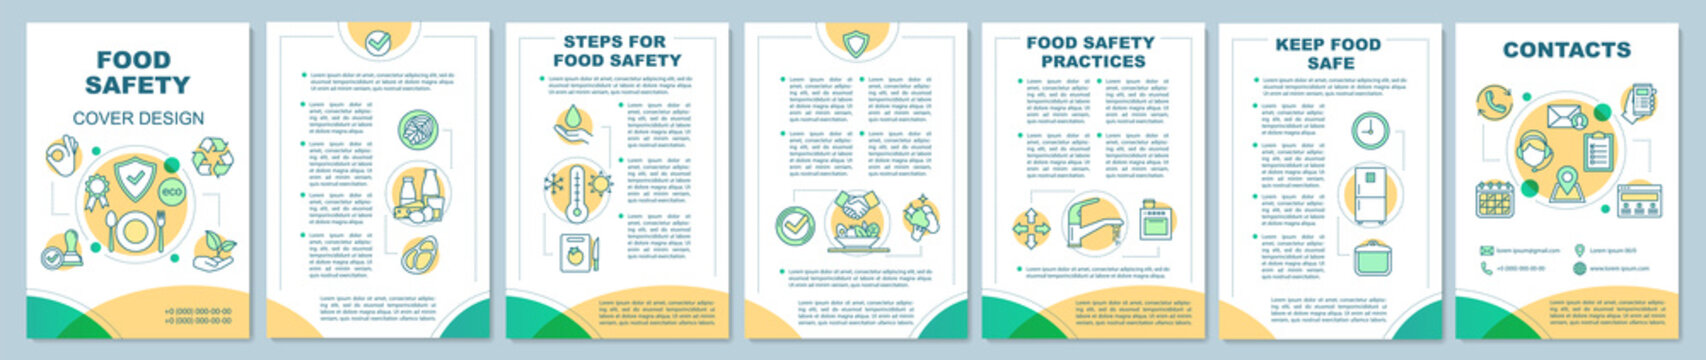 Food safety brochure template layout